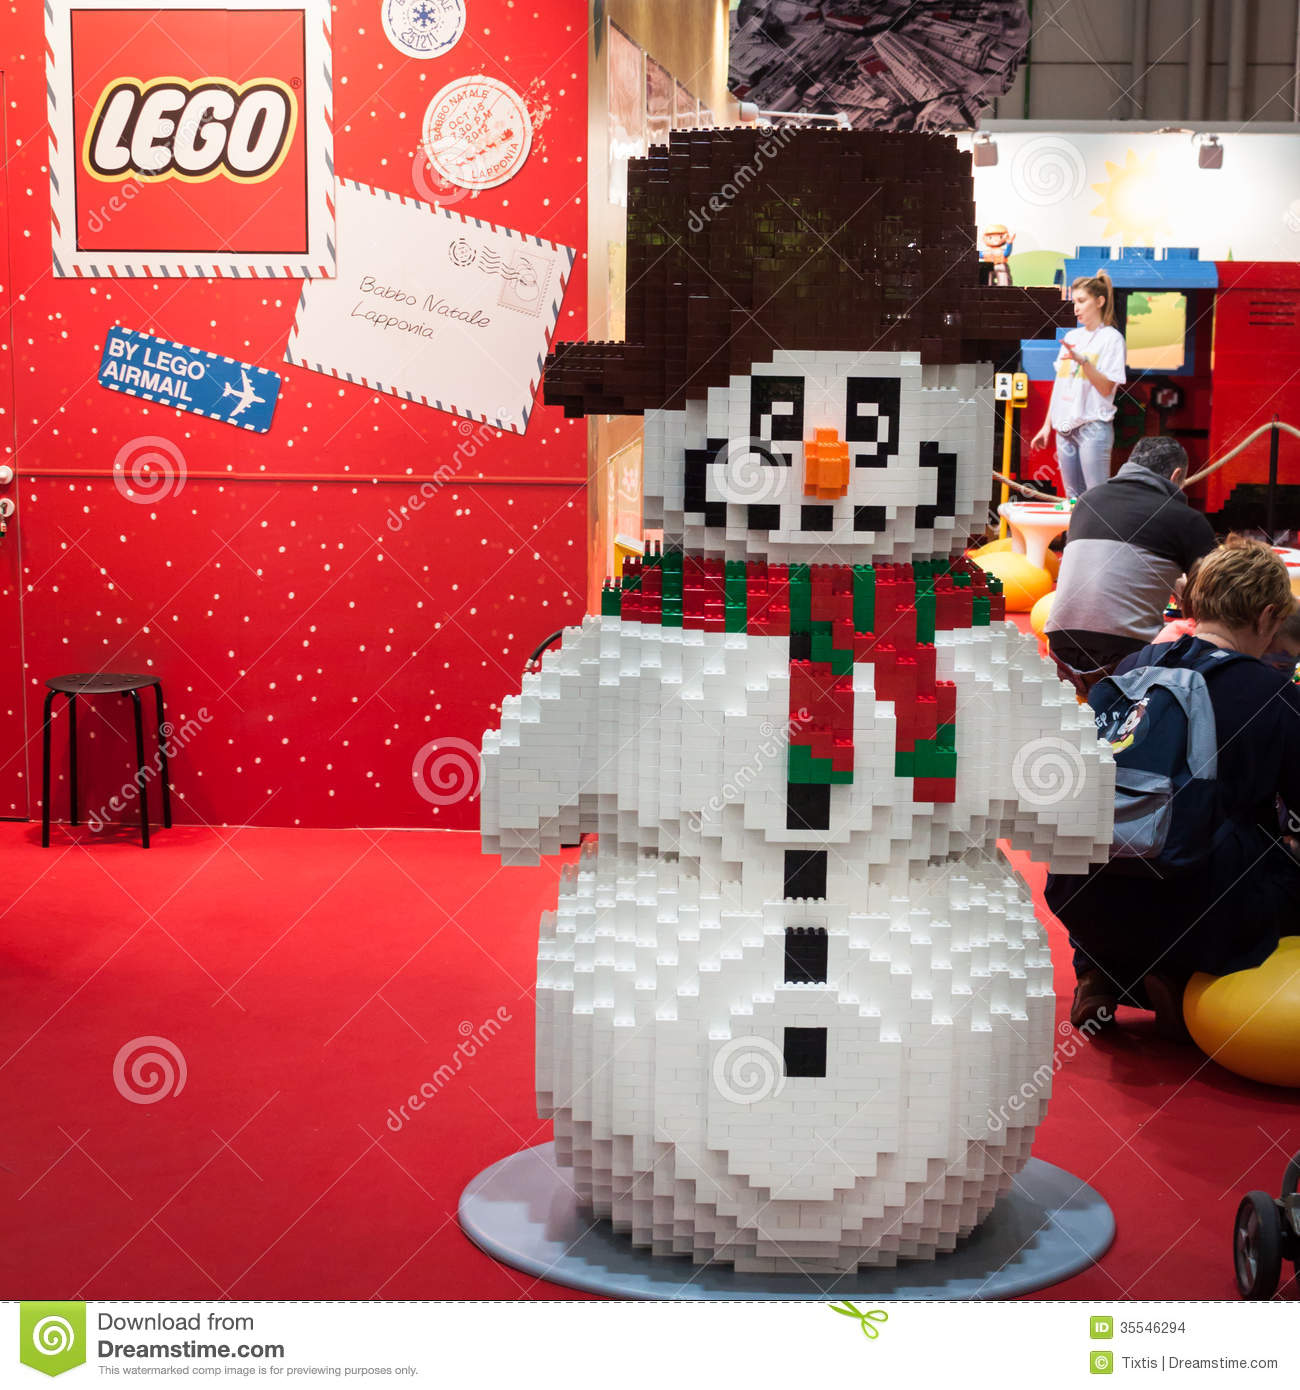 X Exhibition Stand : Lego snowman at g come giocare in milan italy editorial